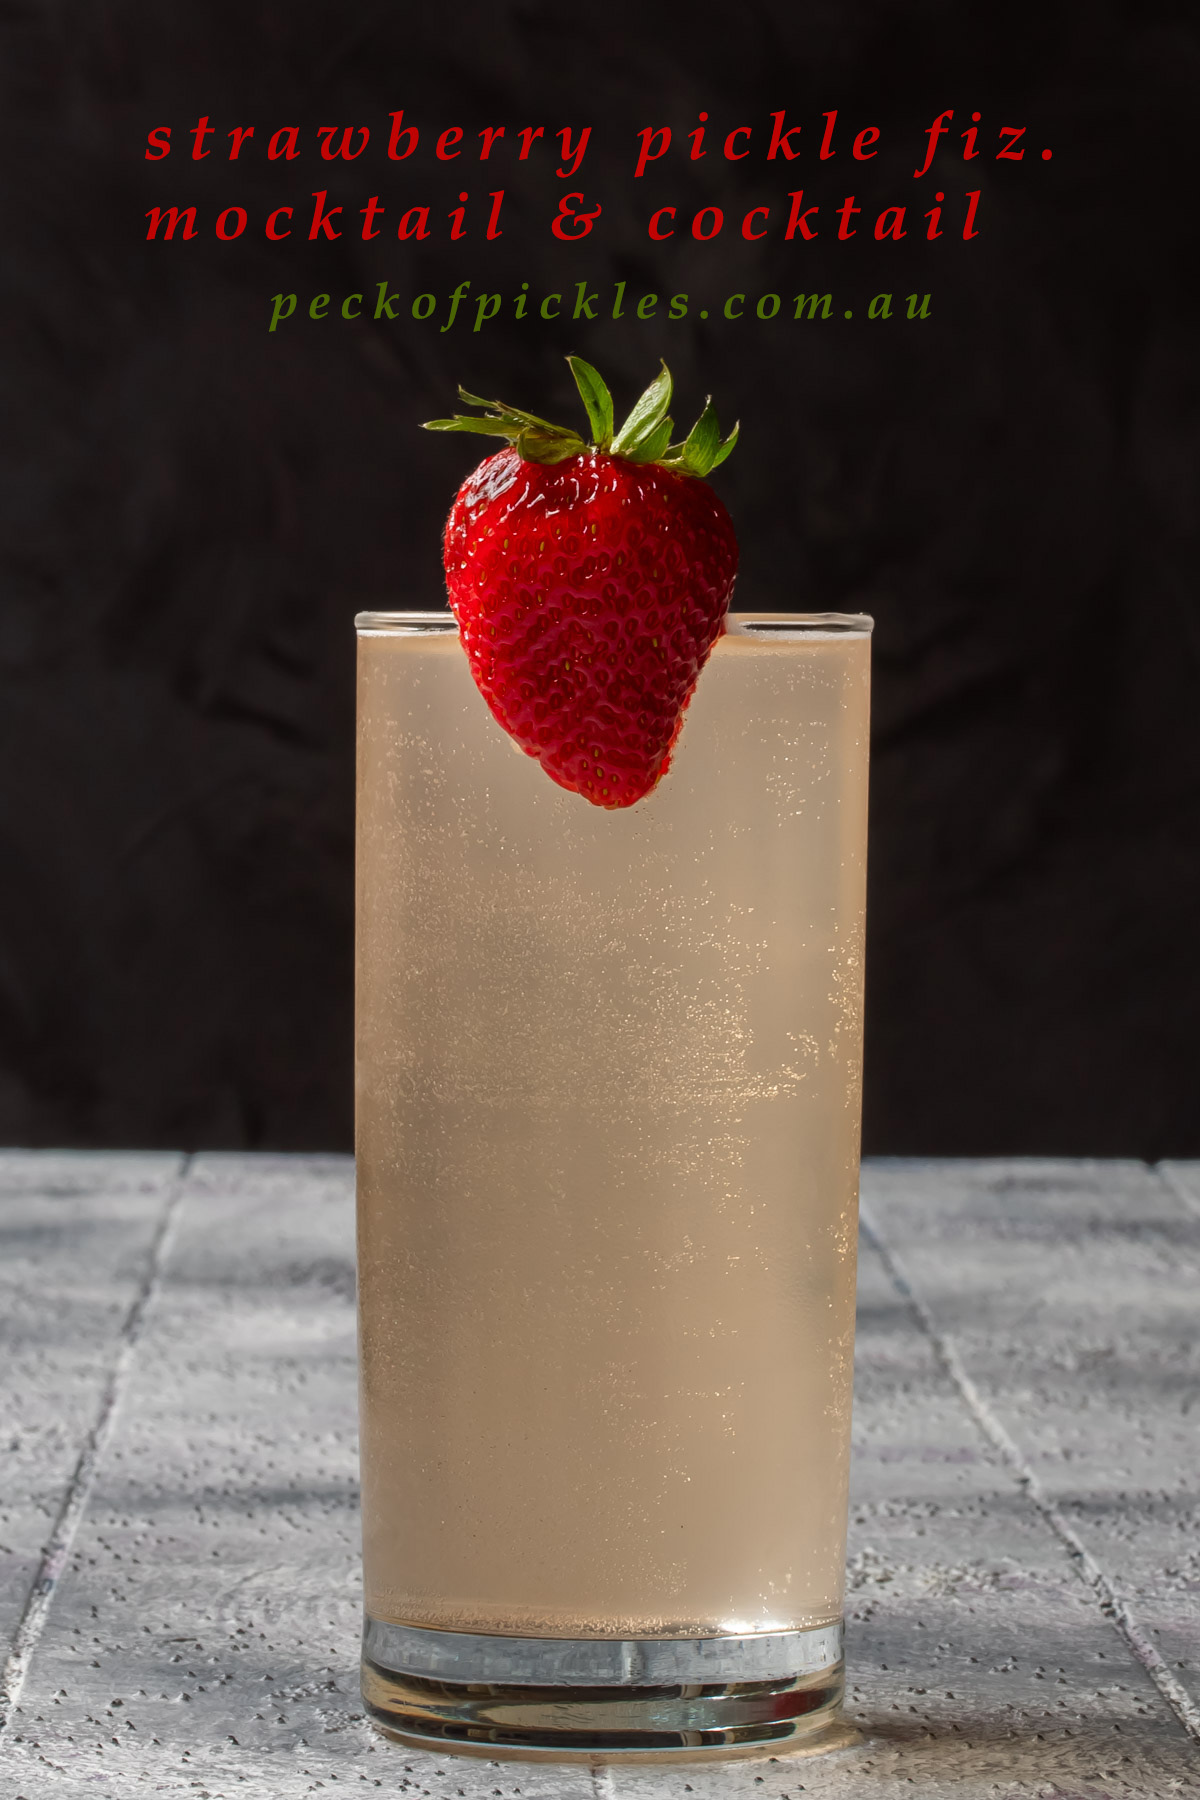 strawberry fiz with strawberry garnish